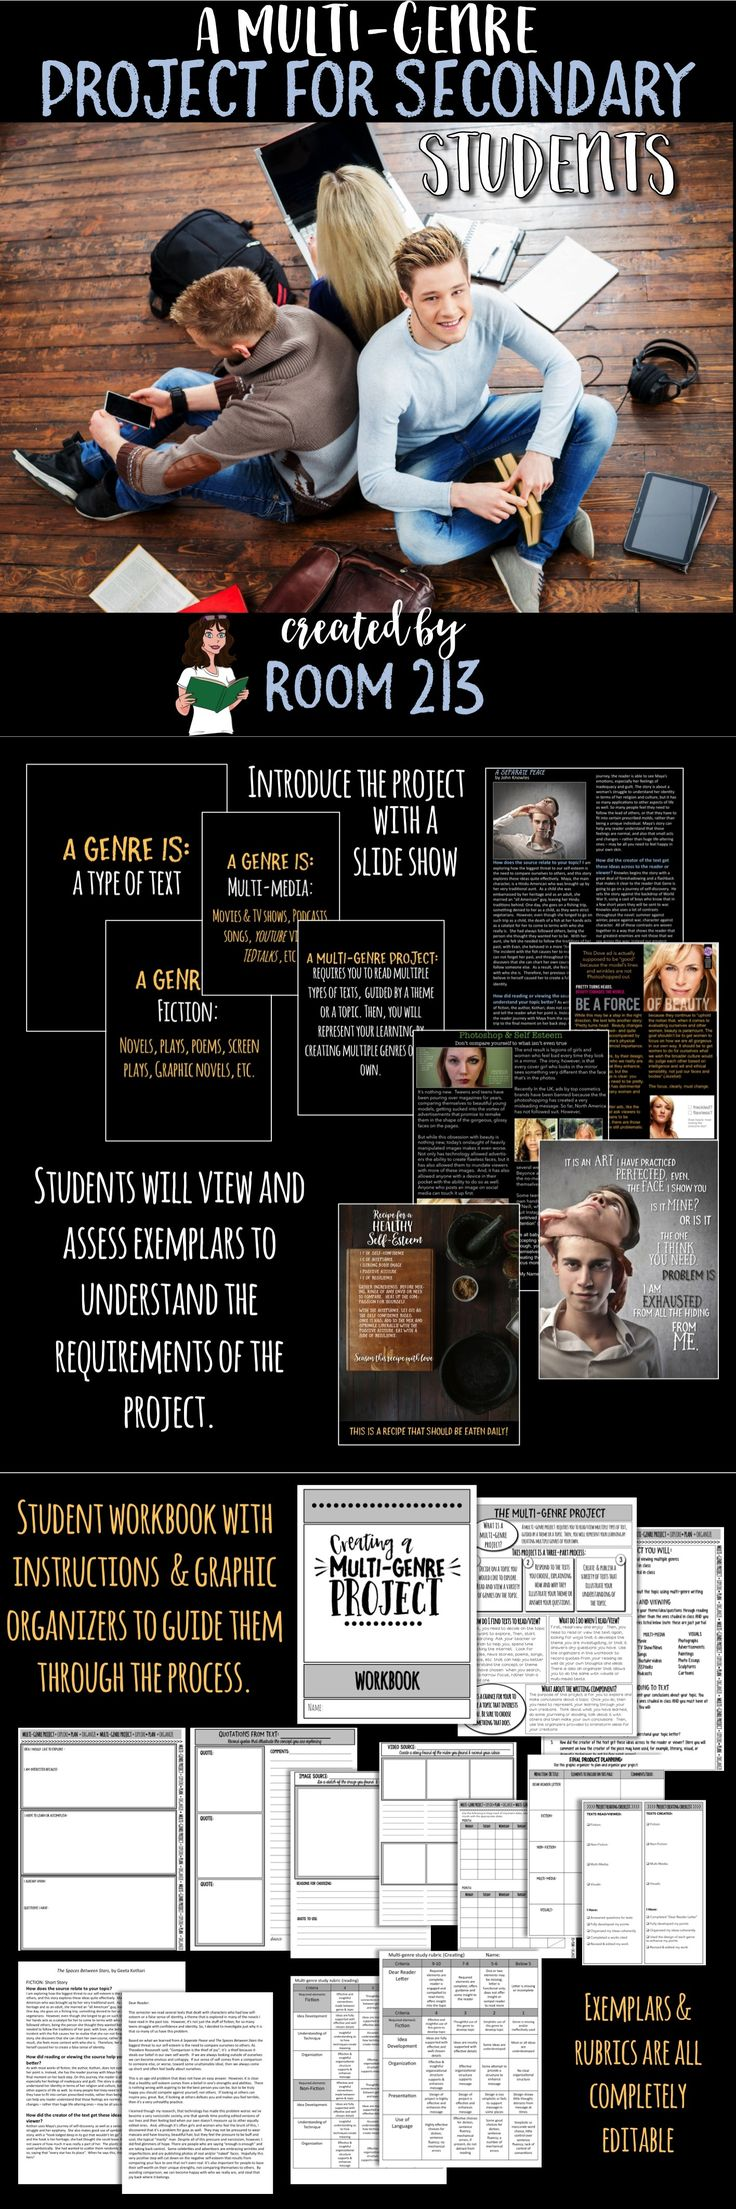 Try a multi-genre project with your students. You will get engaged students AND interesting products to mark!